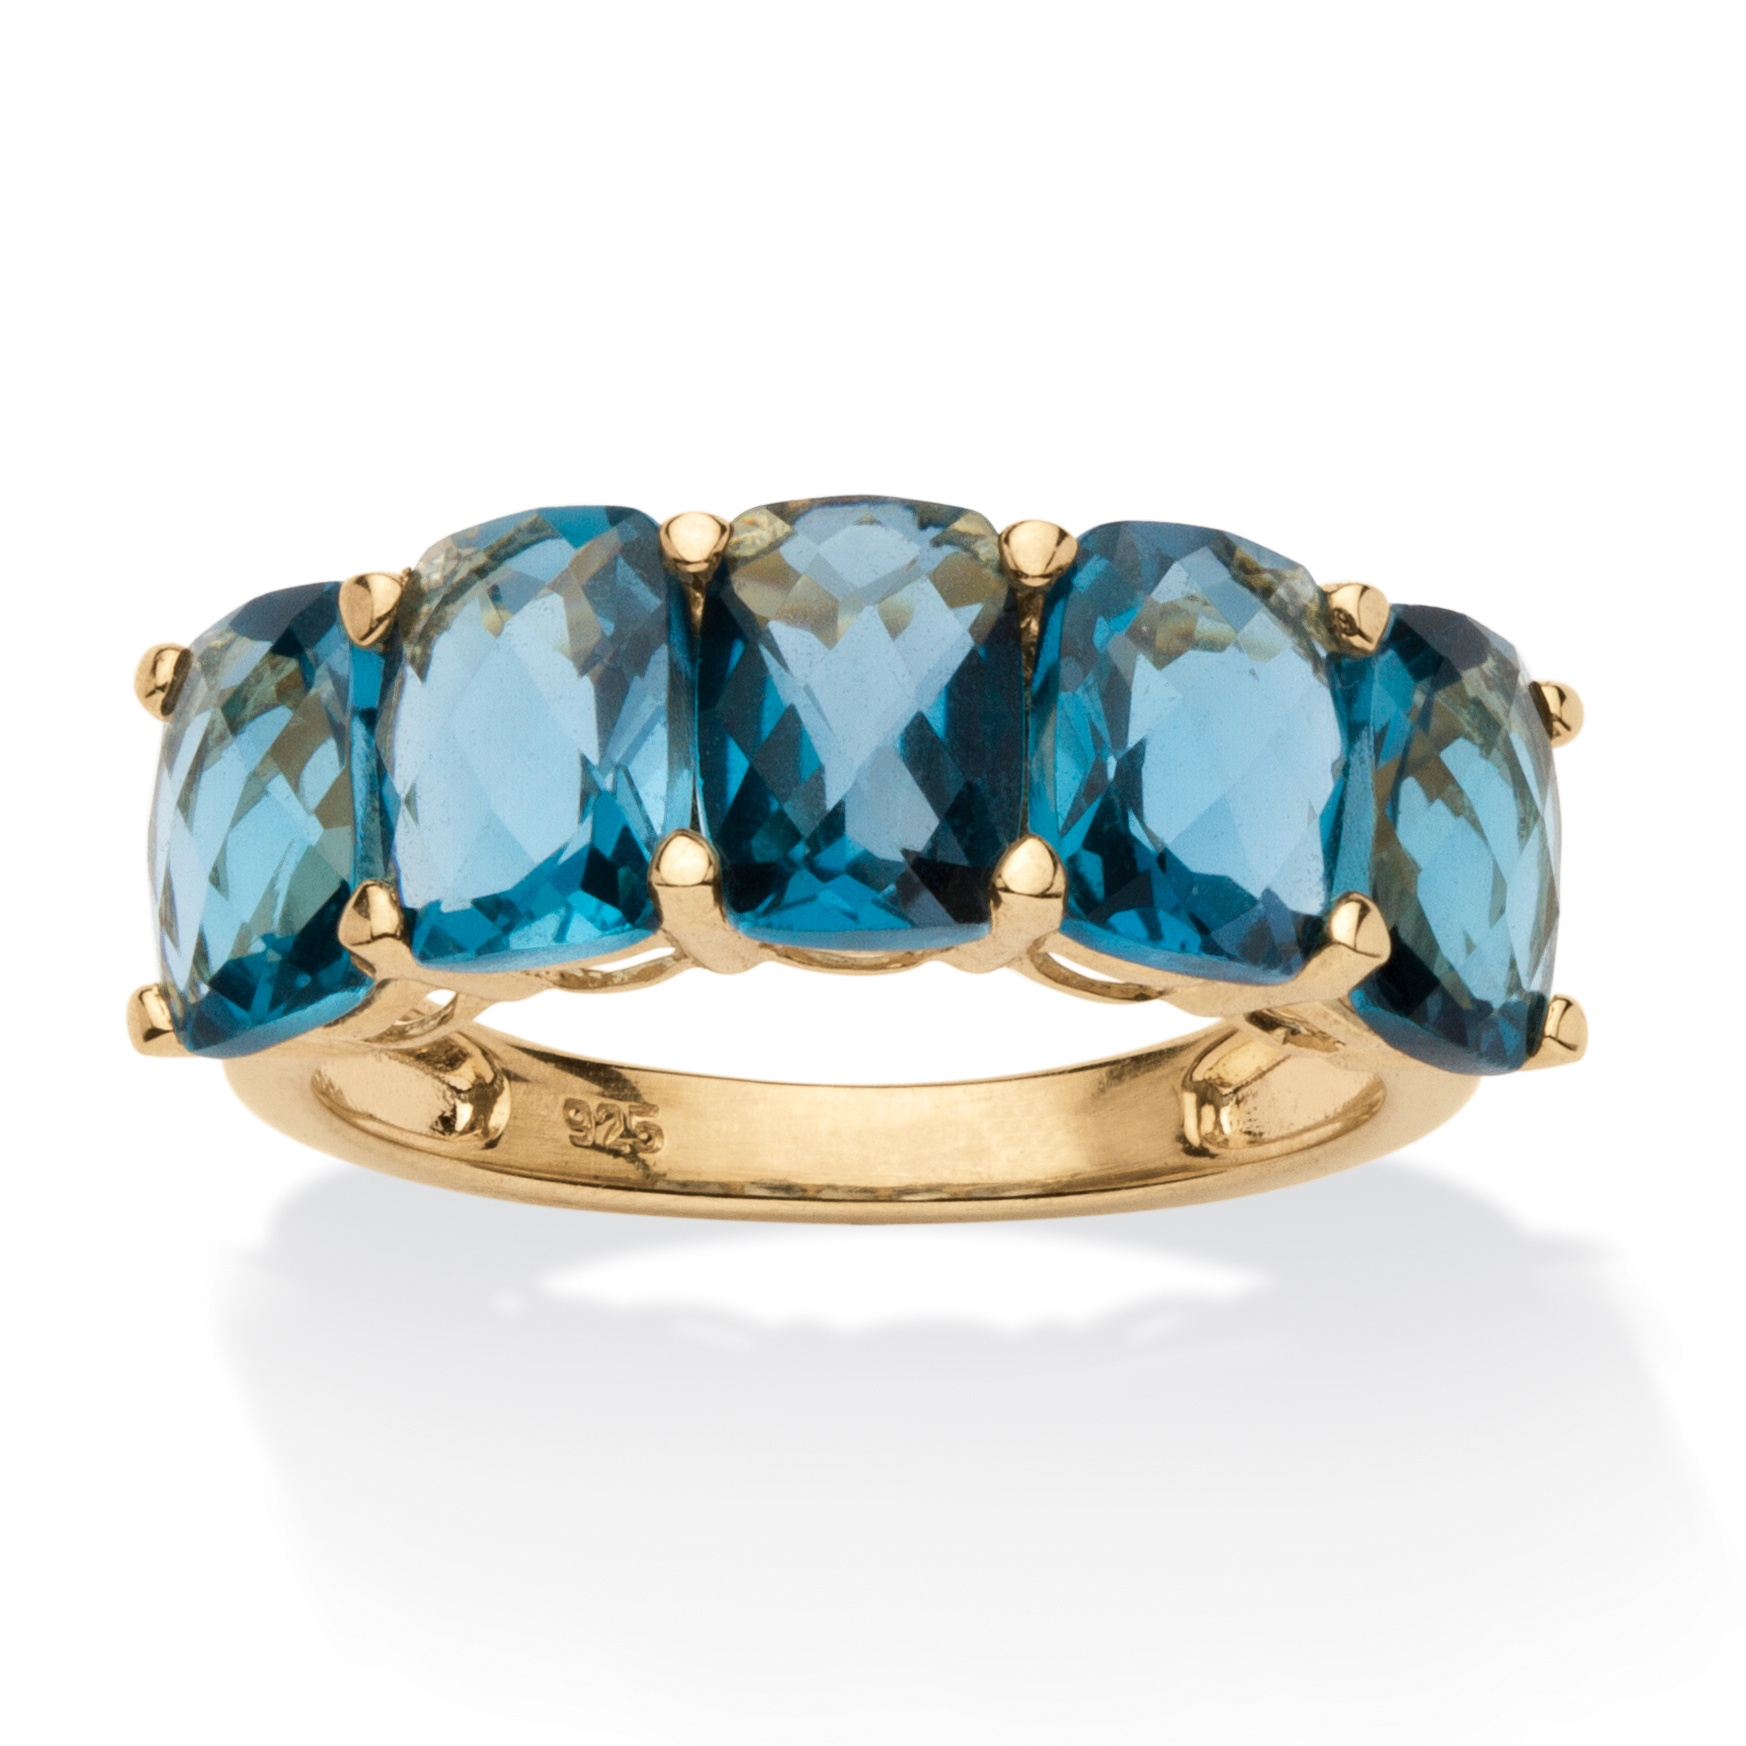 5 TCW Oval-Cut London Blue Genuine Topaz 18k Gold over Sterling Silver Ring by PalmBeach Jewelry